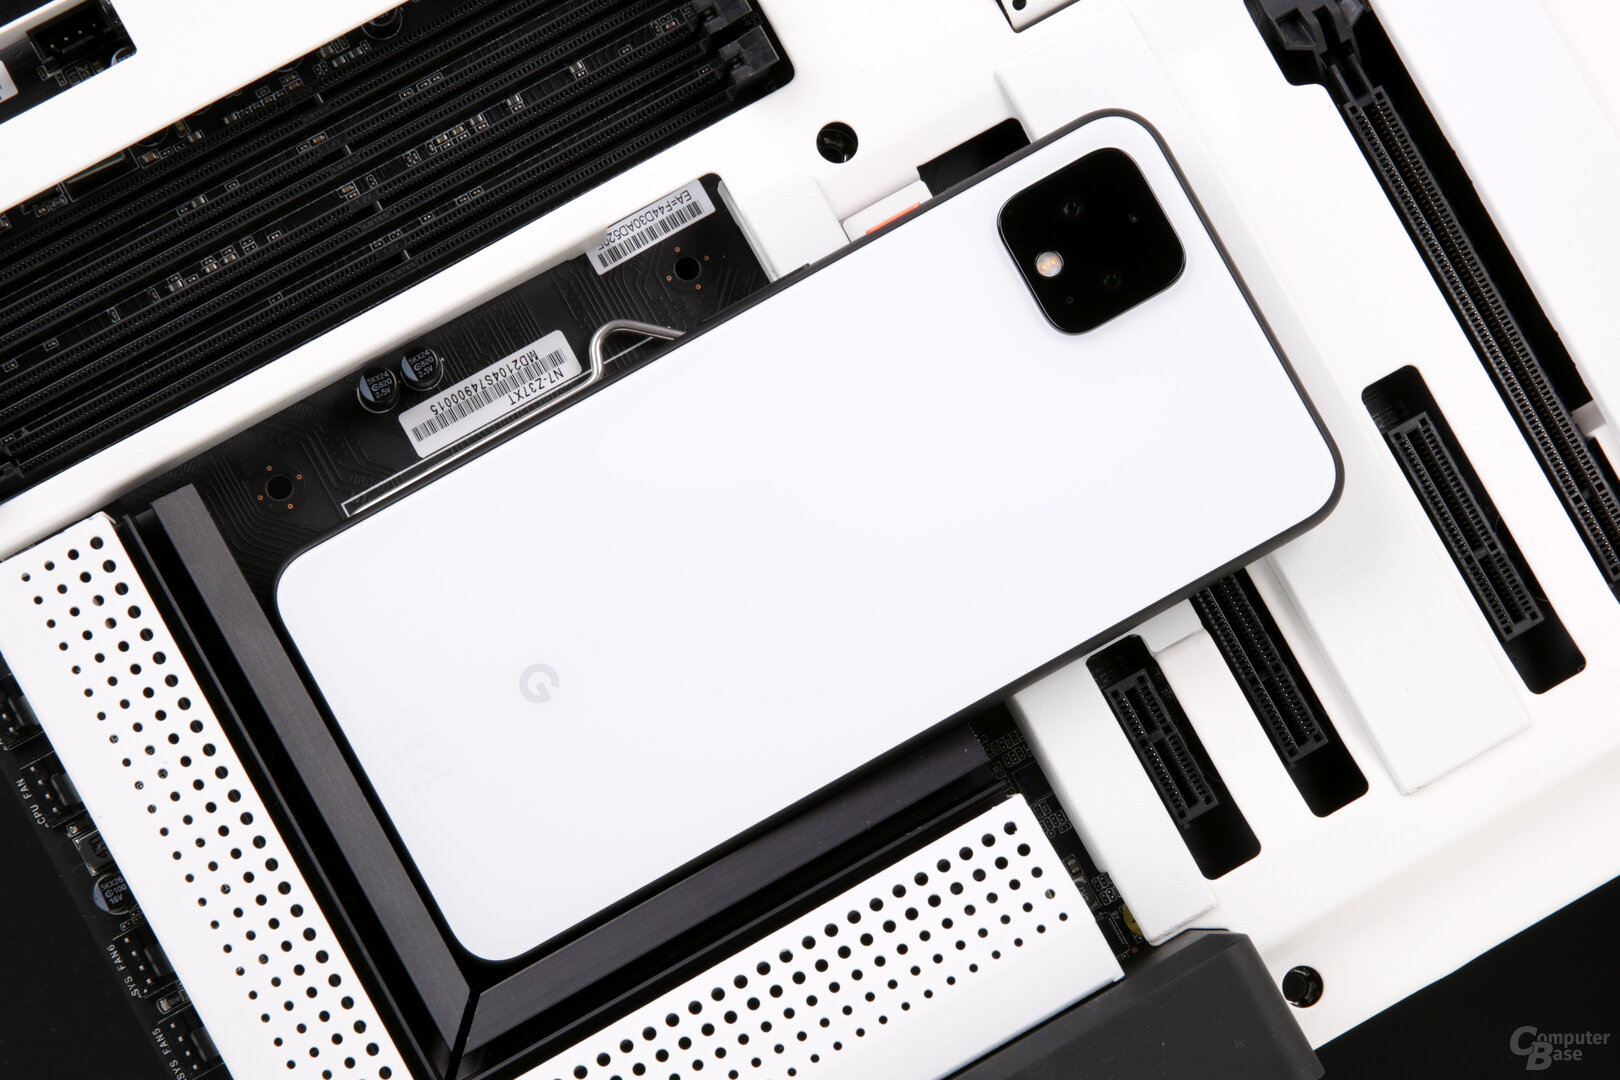 Google Pixel 4 XL in Clearly White